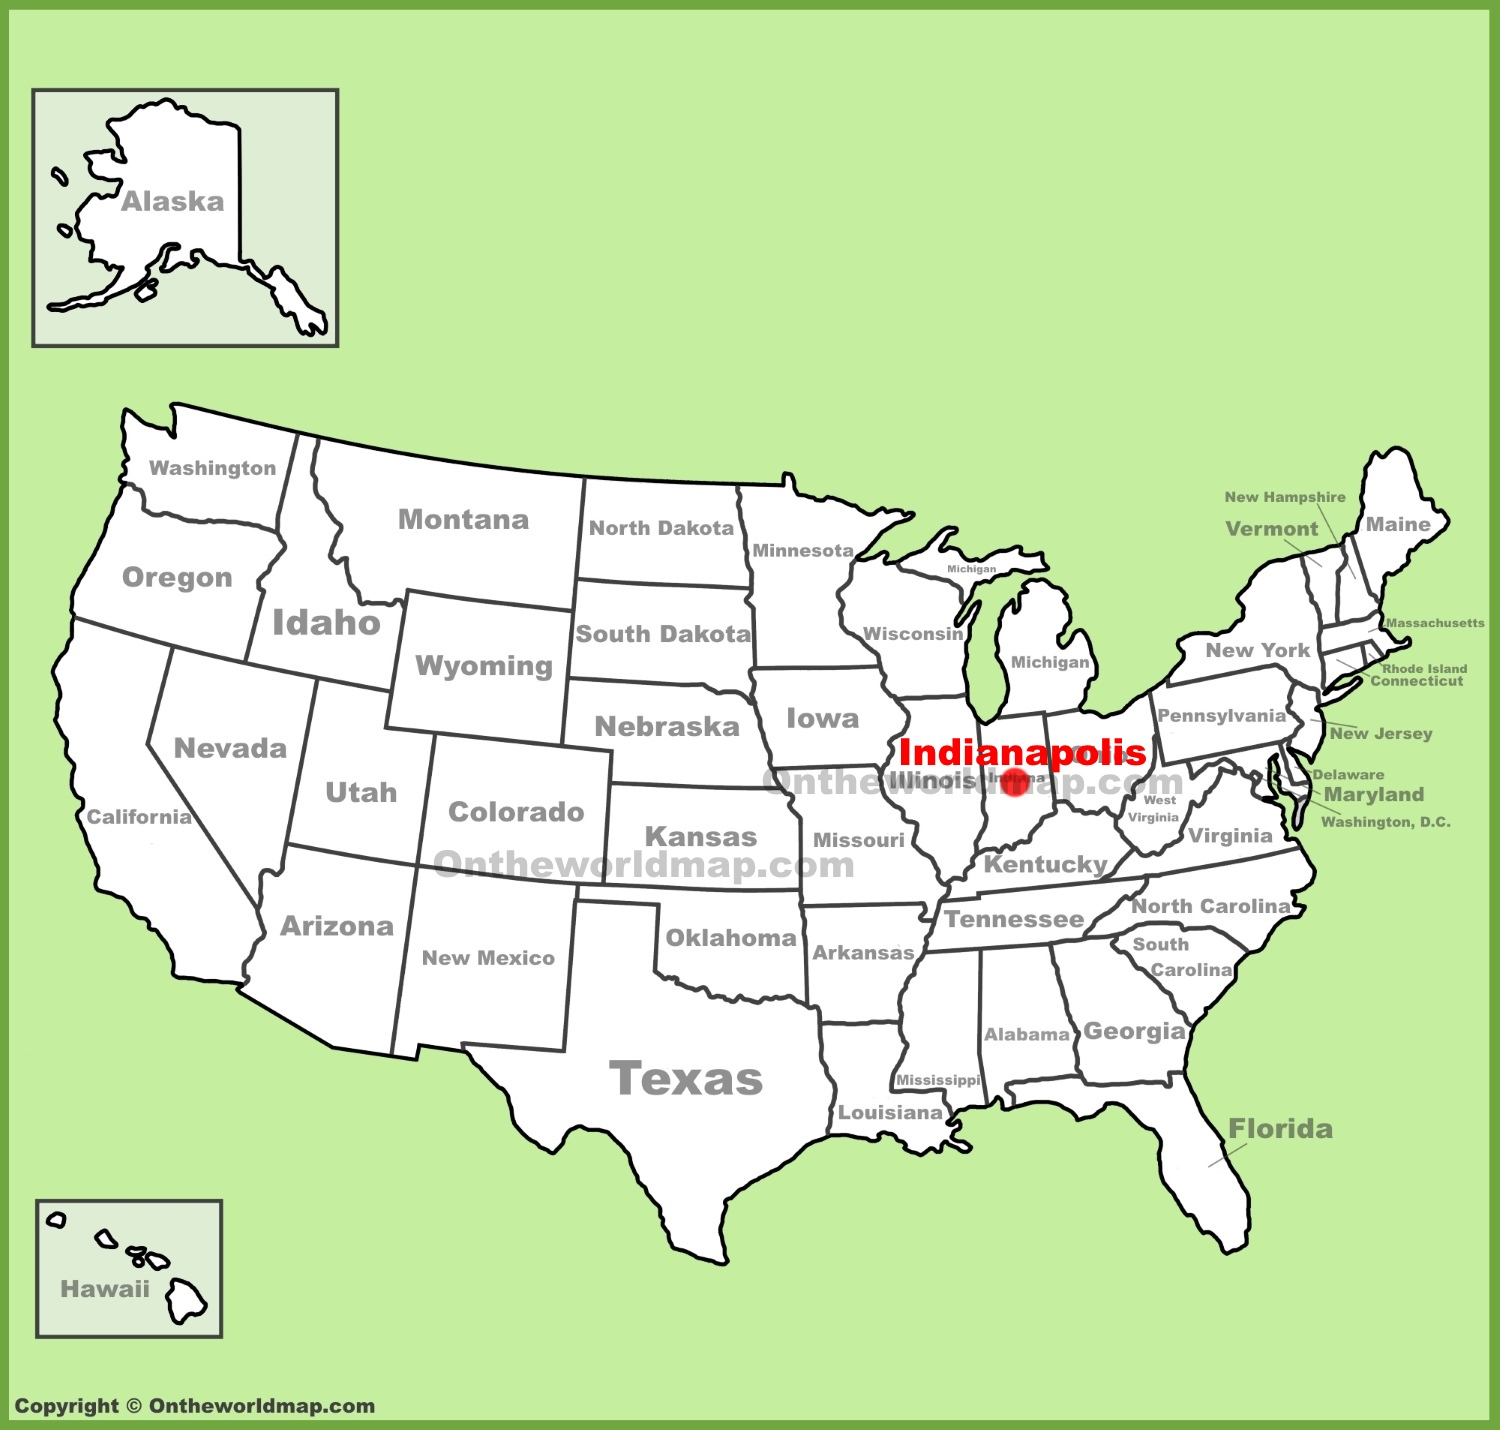 Map Of Indianapolis Indiana Indianapolis location on the U.S. Map